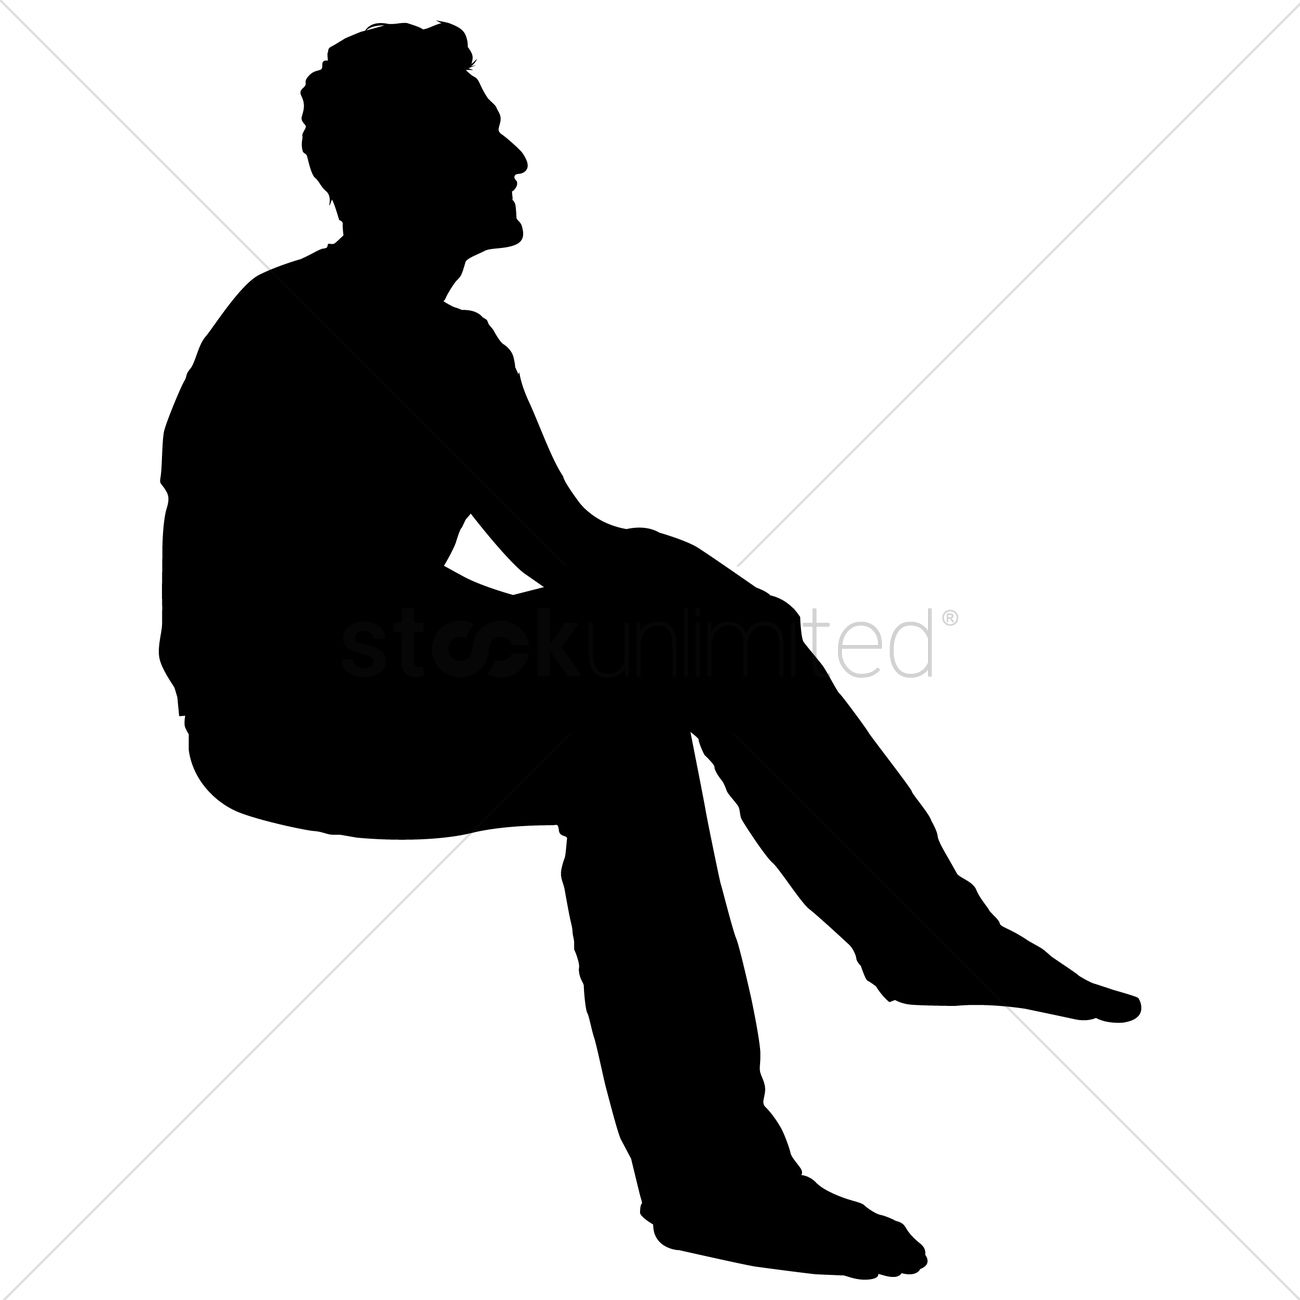 Shape Shapes Silhouette Silhouettes Male Males Man Men Guy Guys.